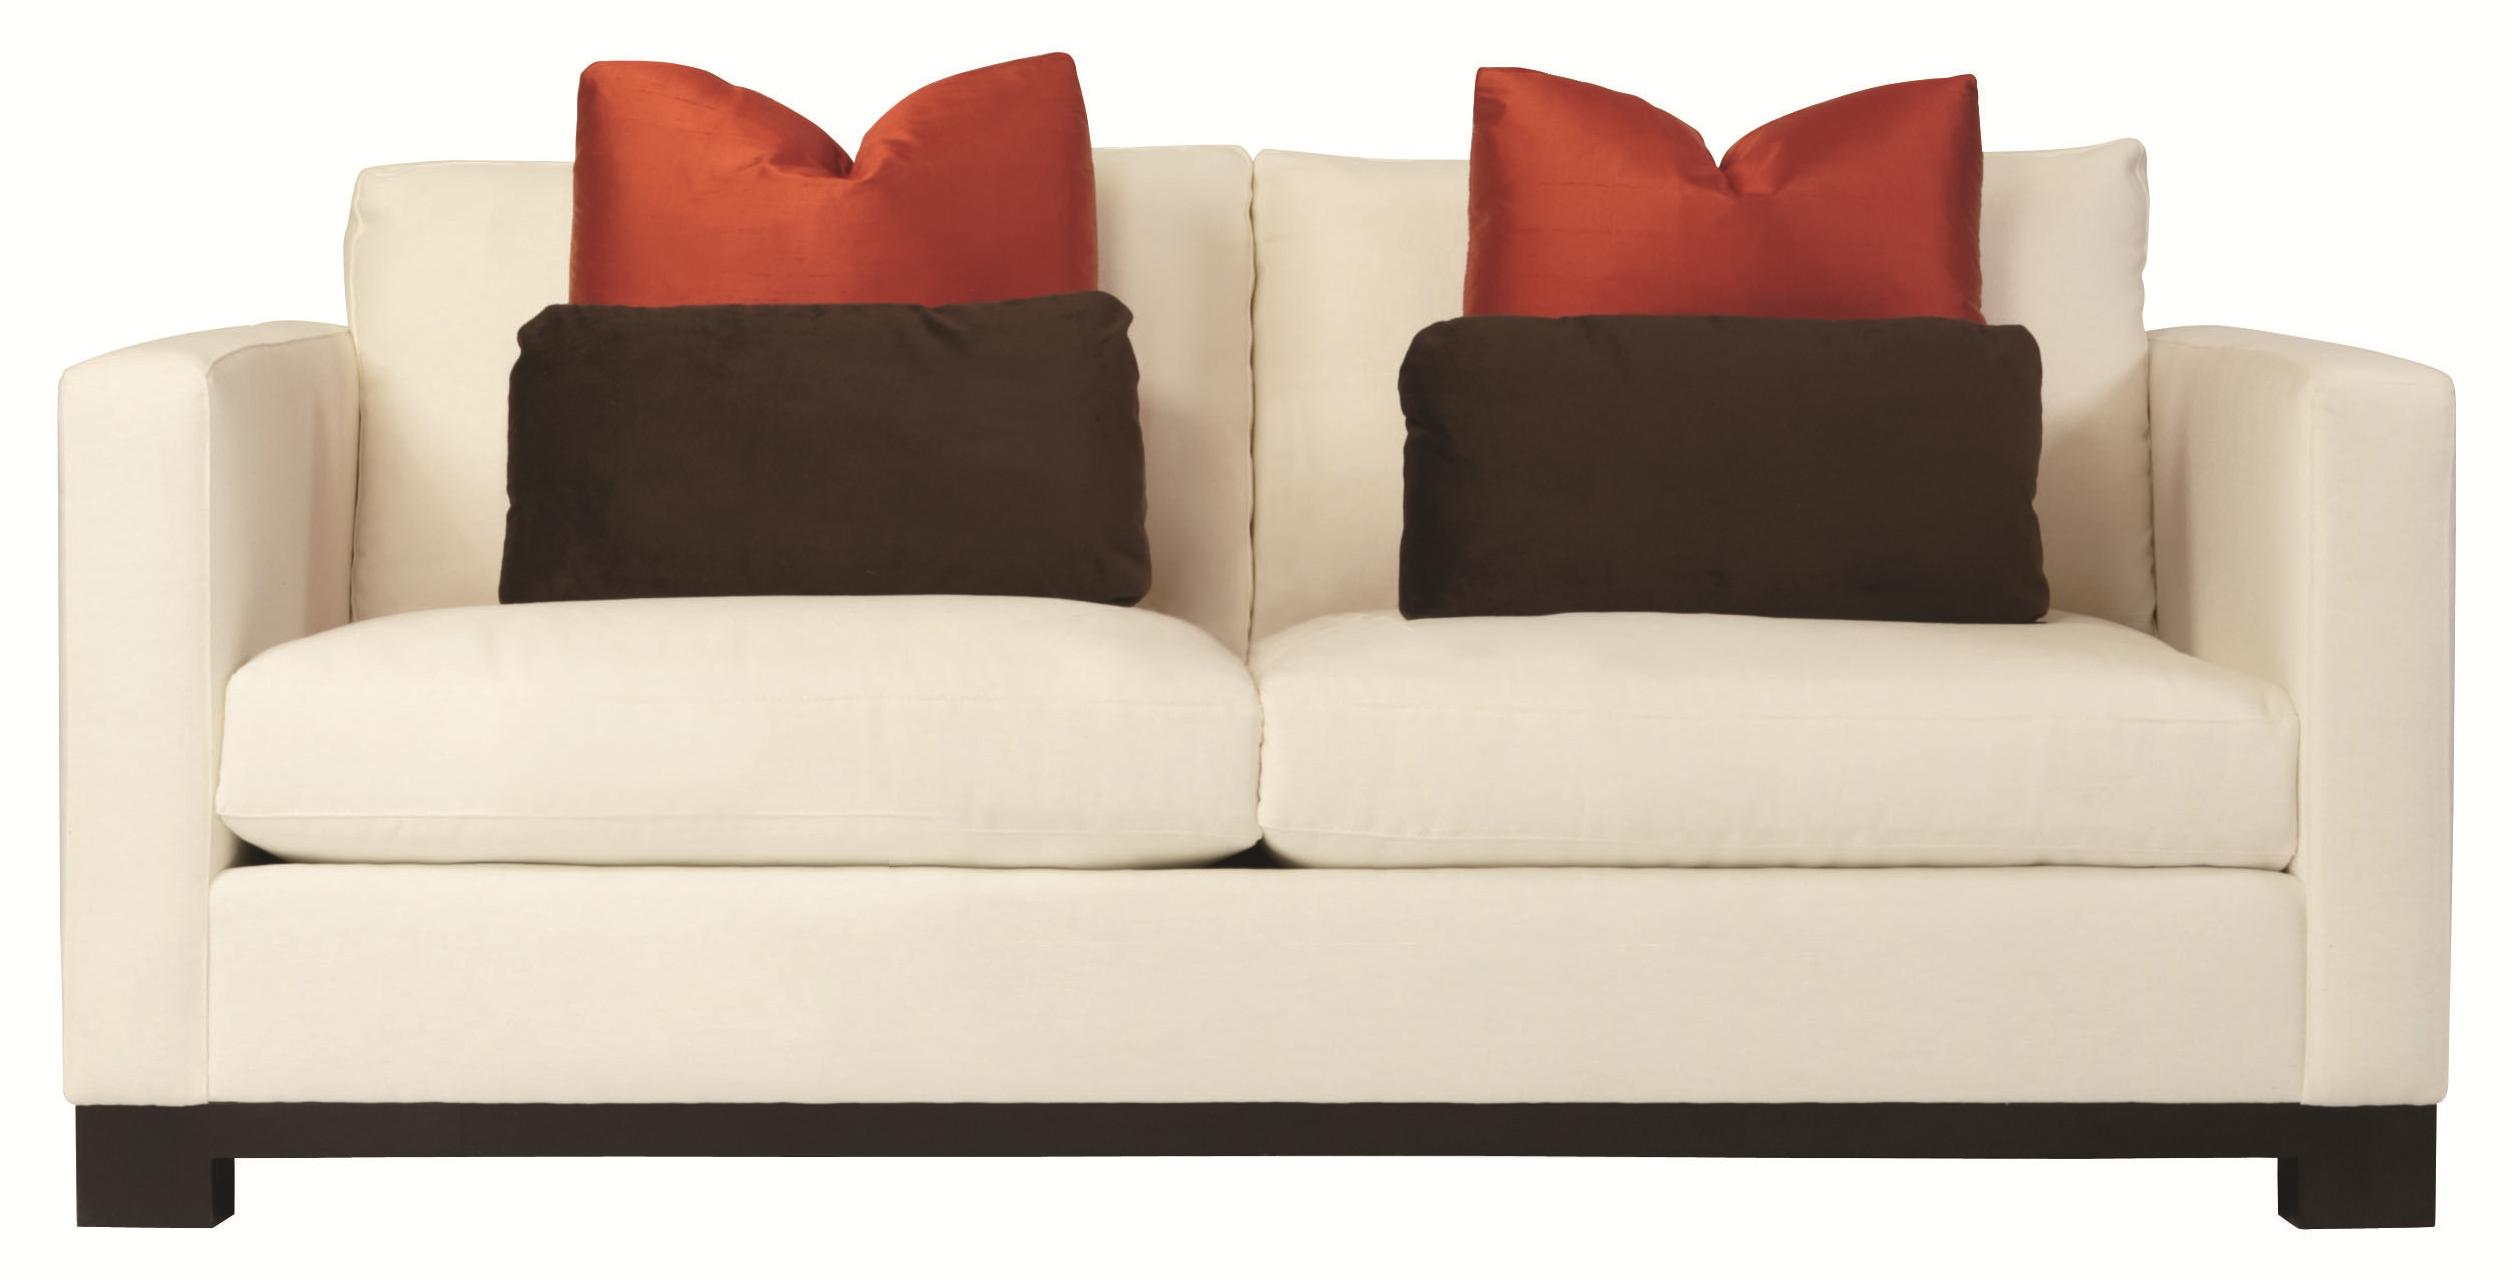 Bernhardt Lanai Modern Upholstered Loveseat with Sleek and  : products2Fbernhardt2Fcolor2Flanai20n165n1655 b from www.reedsfurniture.com size 2512 x 1280 jpeg 116kB